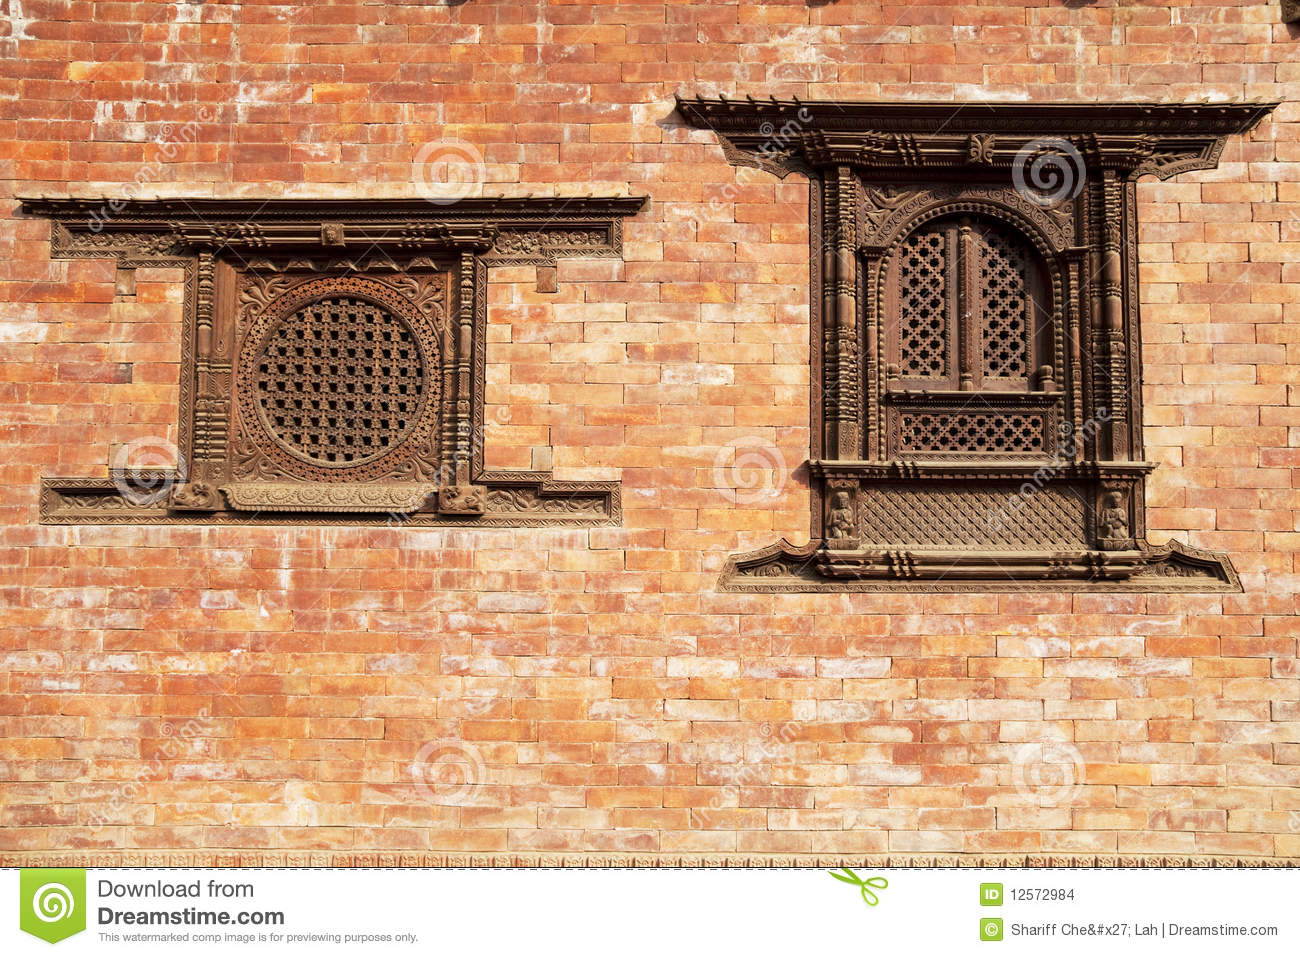 Windows bhaktapur nepal stock images image 12572984 for Window design in nepal